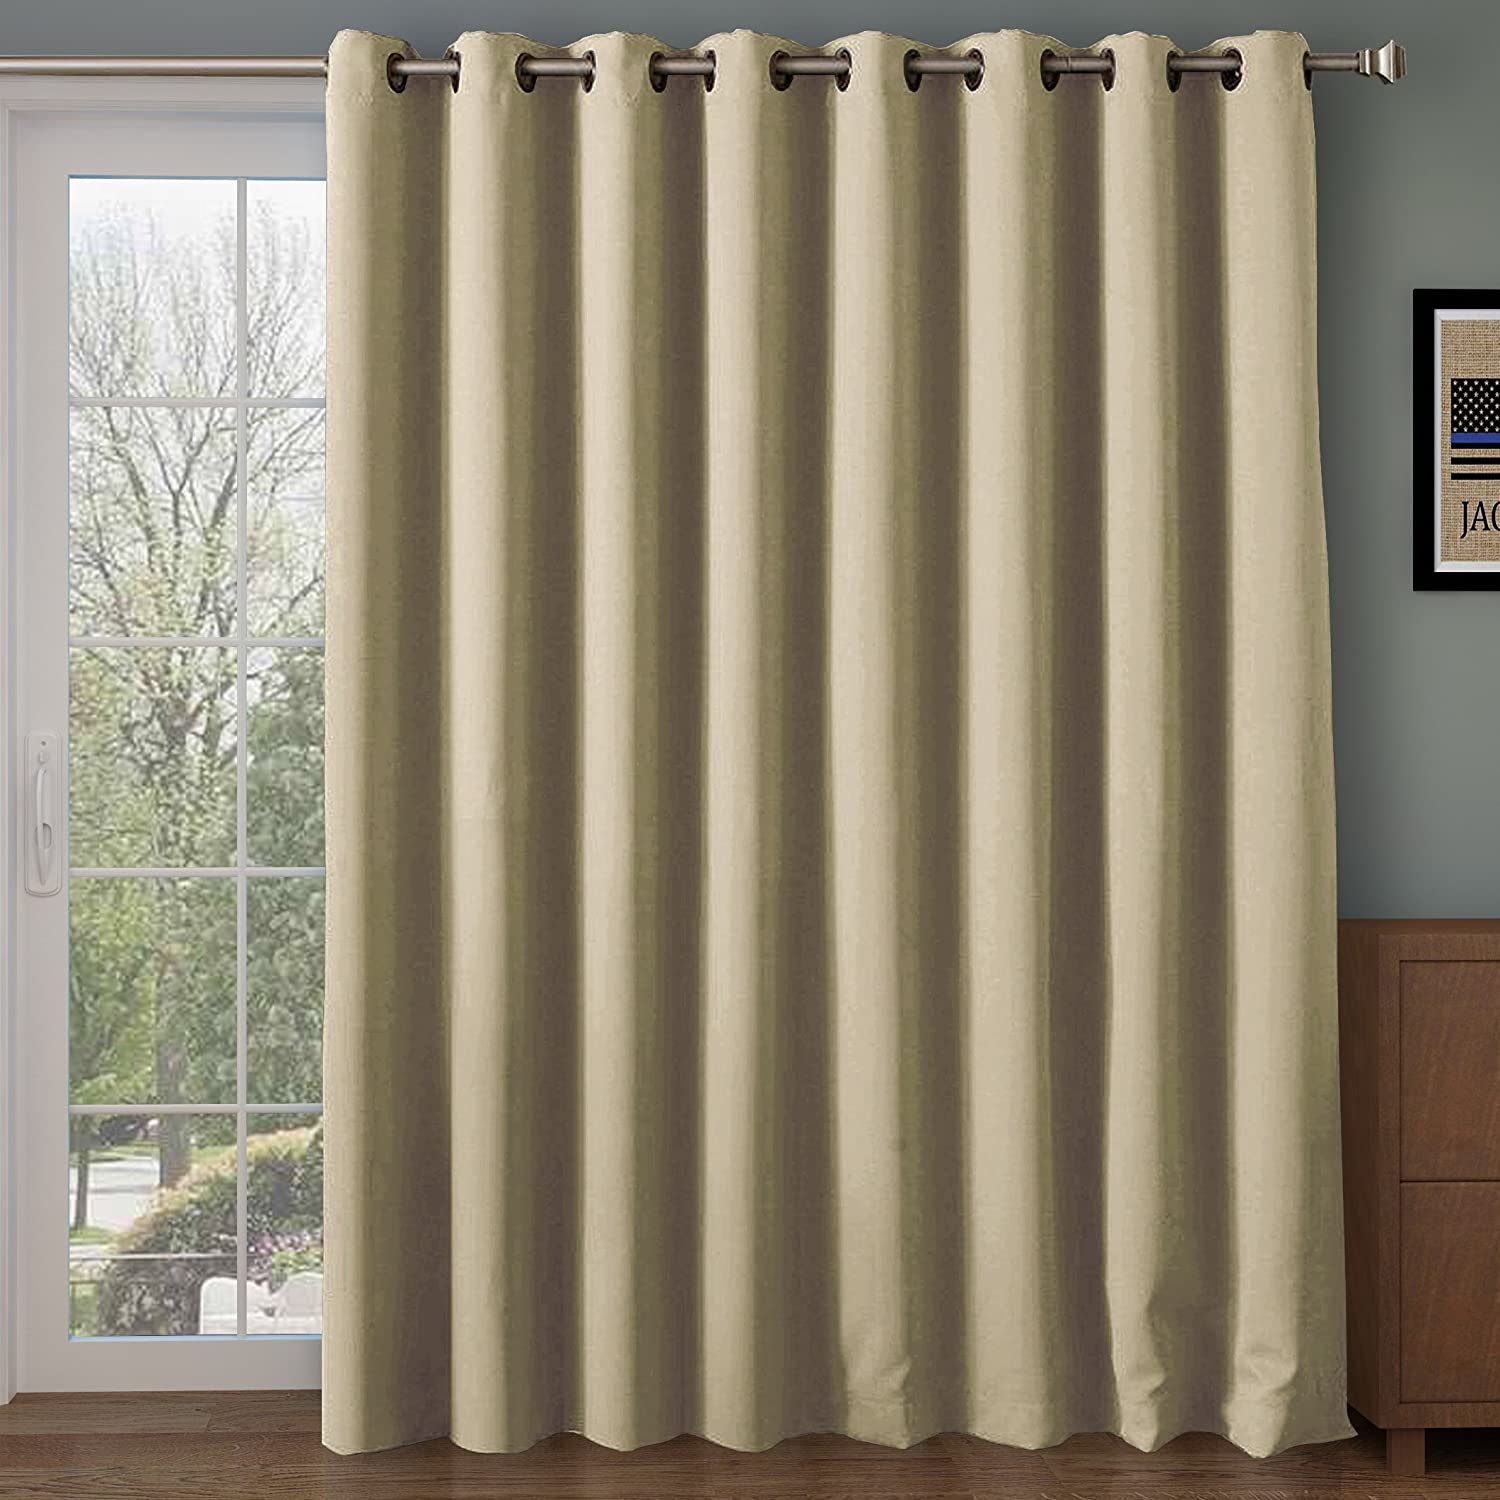 RHF Wide Thermal Blackout Patio Door Curtain Panel, Sliding Door Insulated Curtains,Thermal Curtains,Grommet Curtains, Extra Wide Curtains, Curtains for Sliding Glass Door:100W by 84L Inches-Beige blackout curtains - 81WD3uv51GL - Blackout curtains – 7 best blackout curtains according to reviews